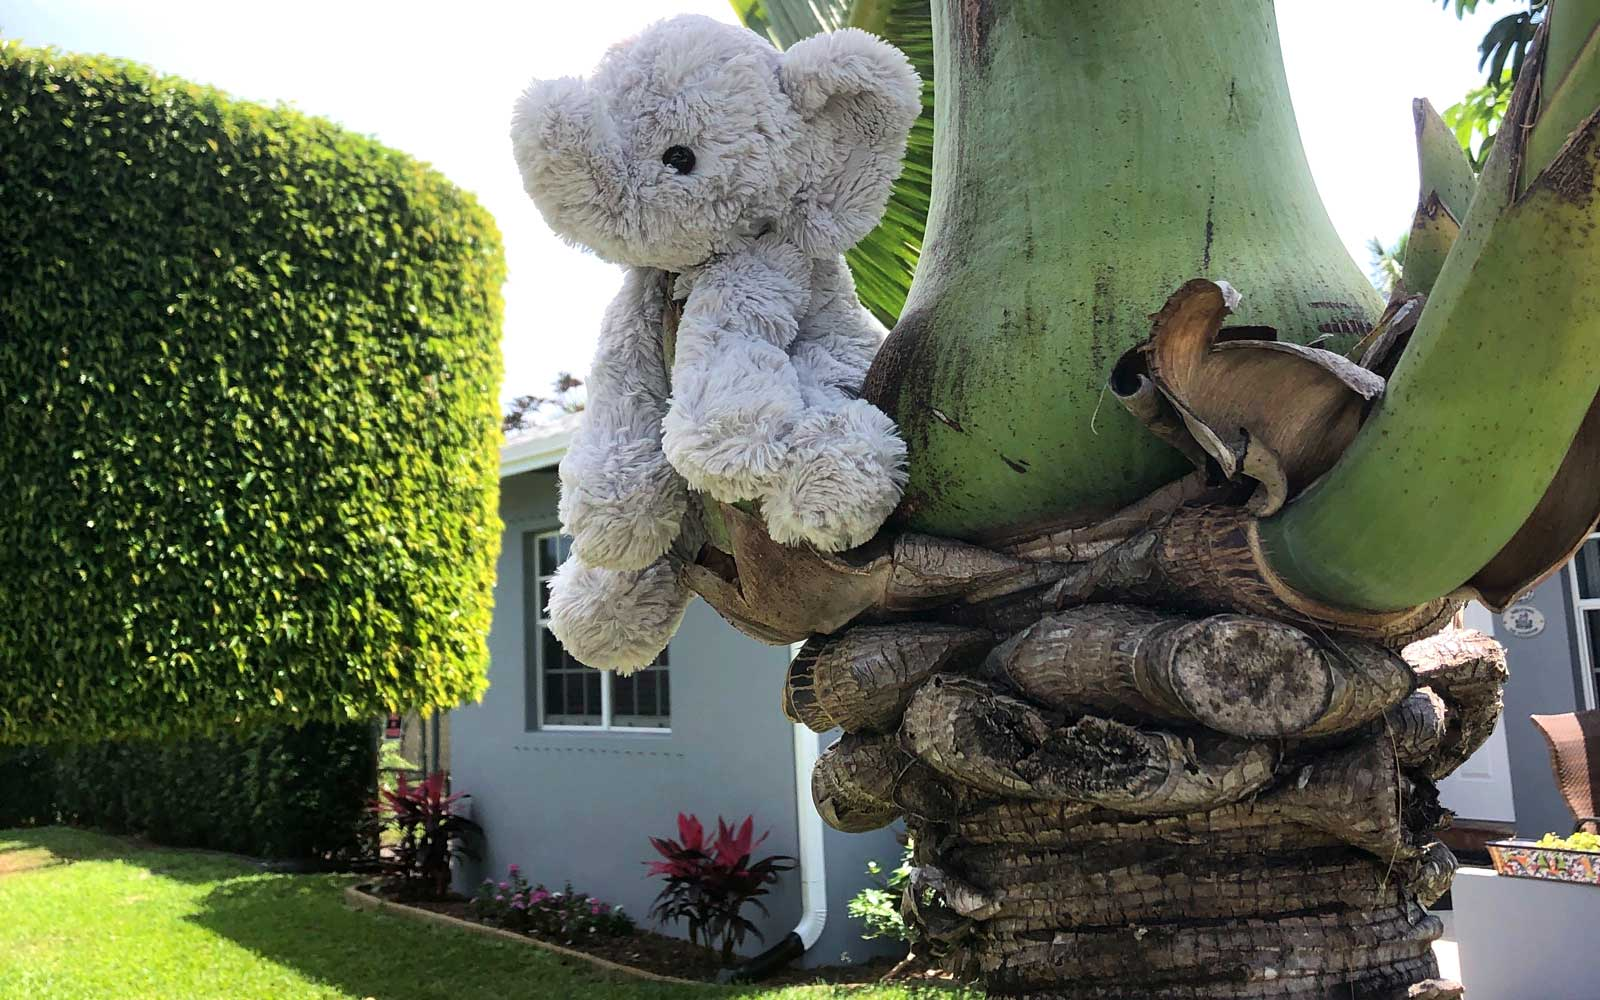 College Park Neighborhood in Lake Worth, FL hides stuffed animals in the yards for kids to go on safari